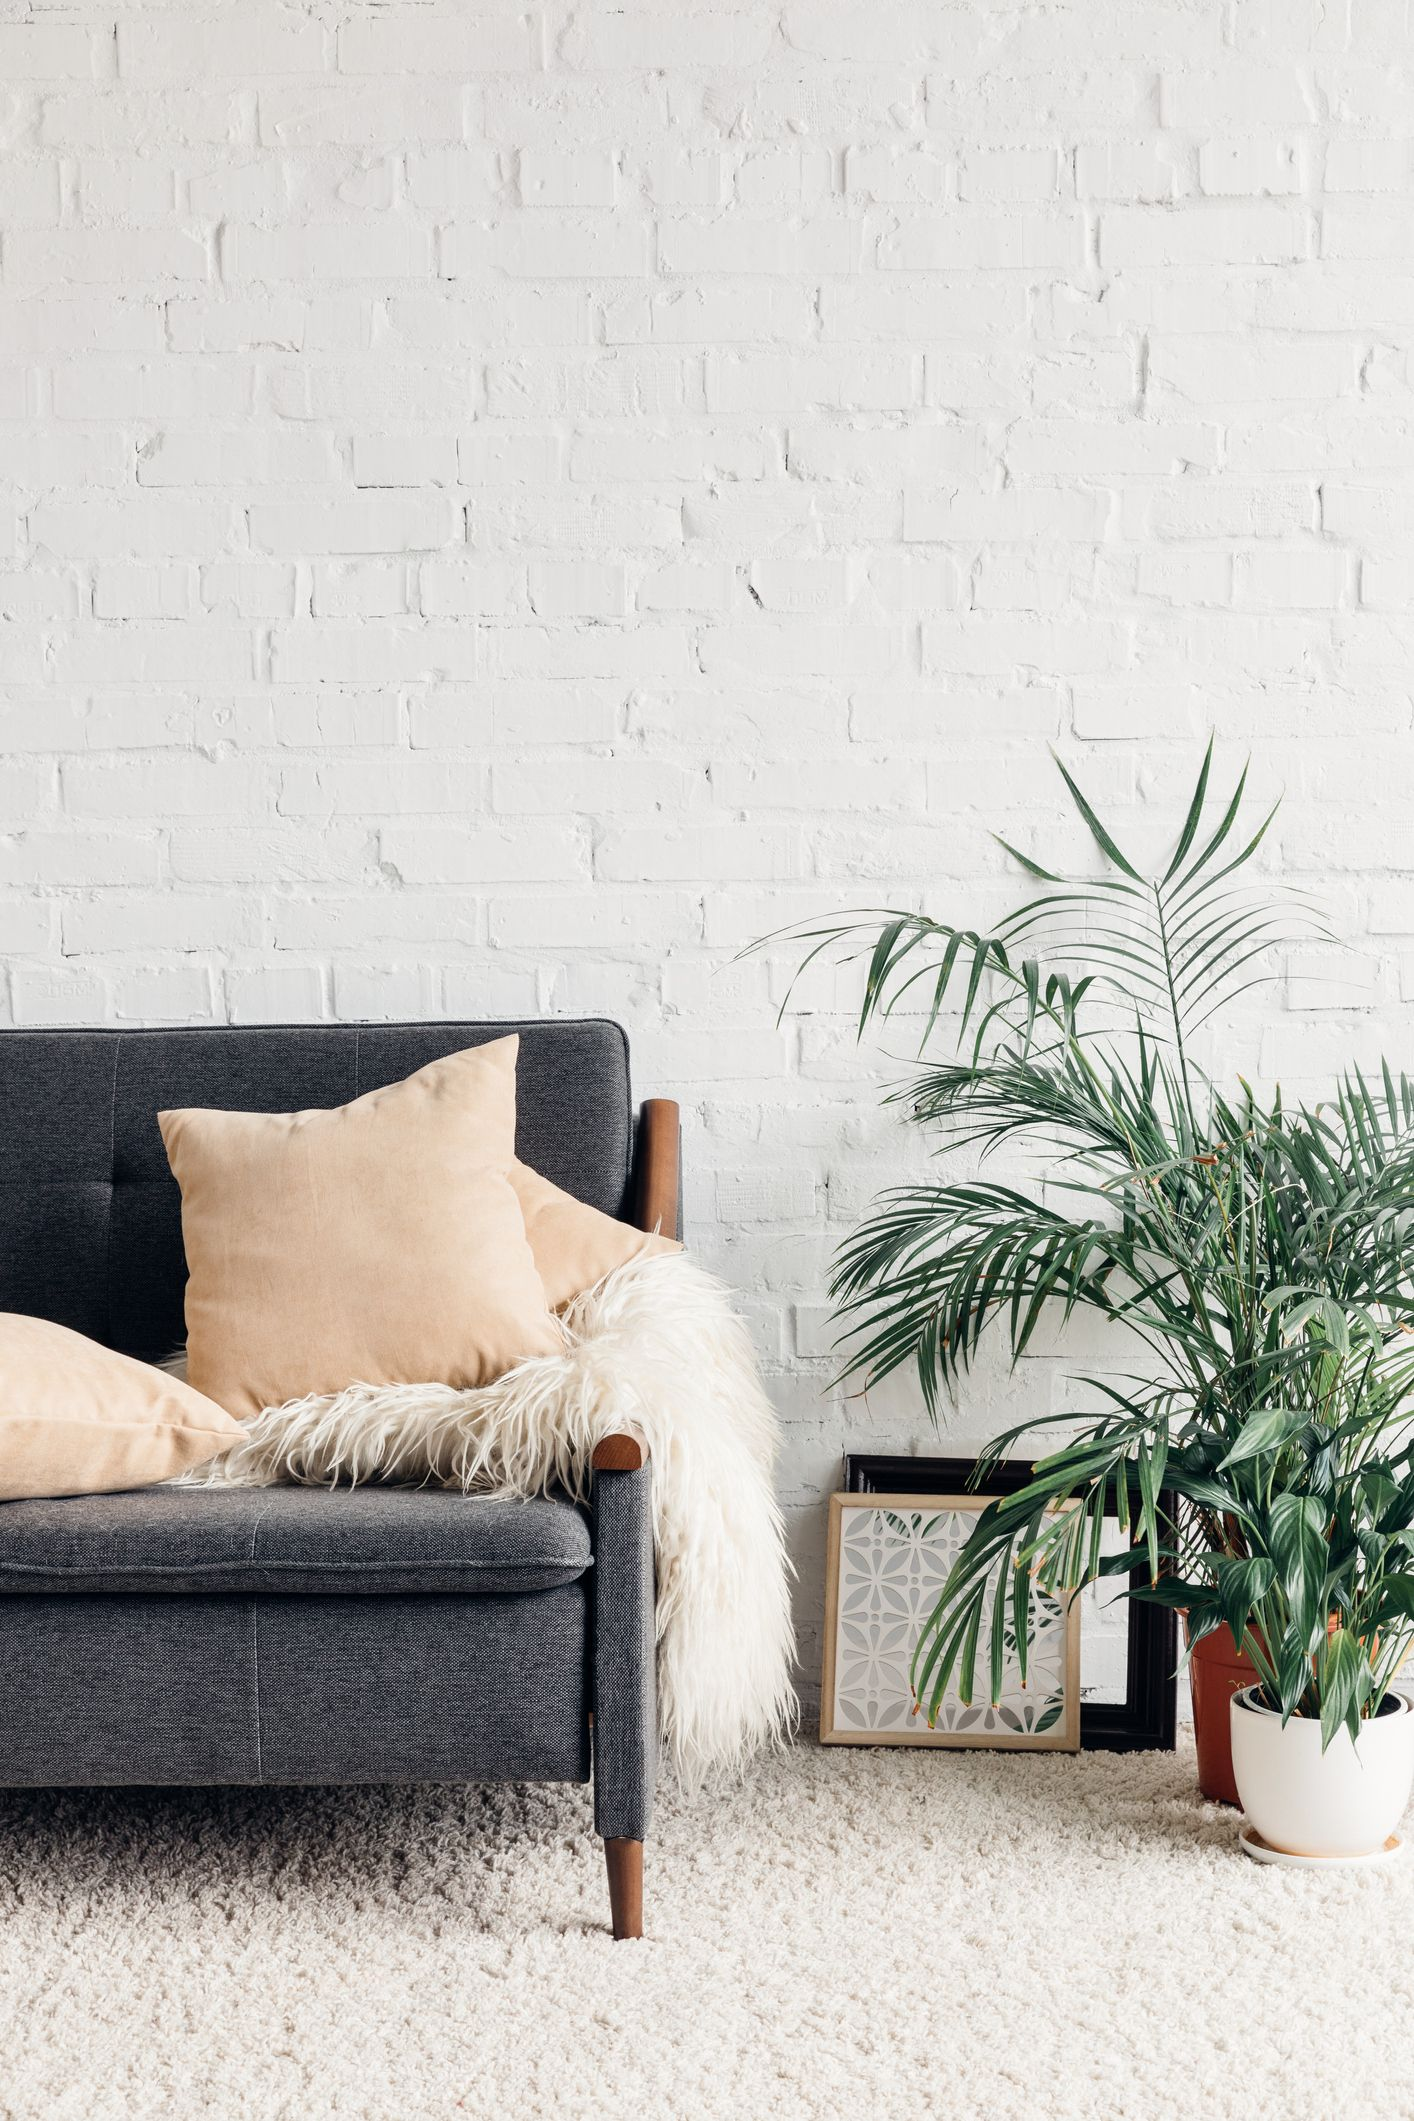 15 Best Living Room Plants to Dress Up Your Space